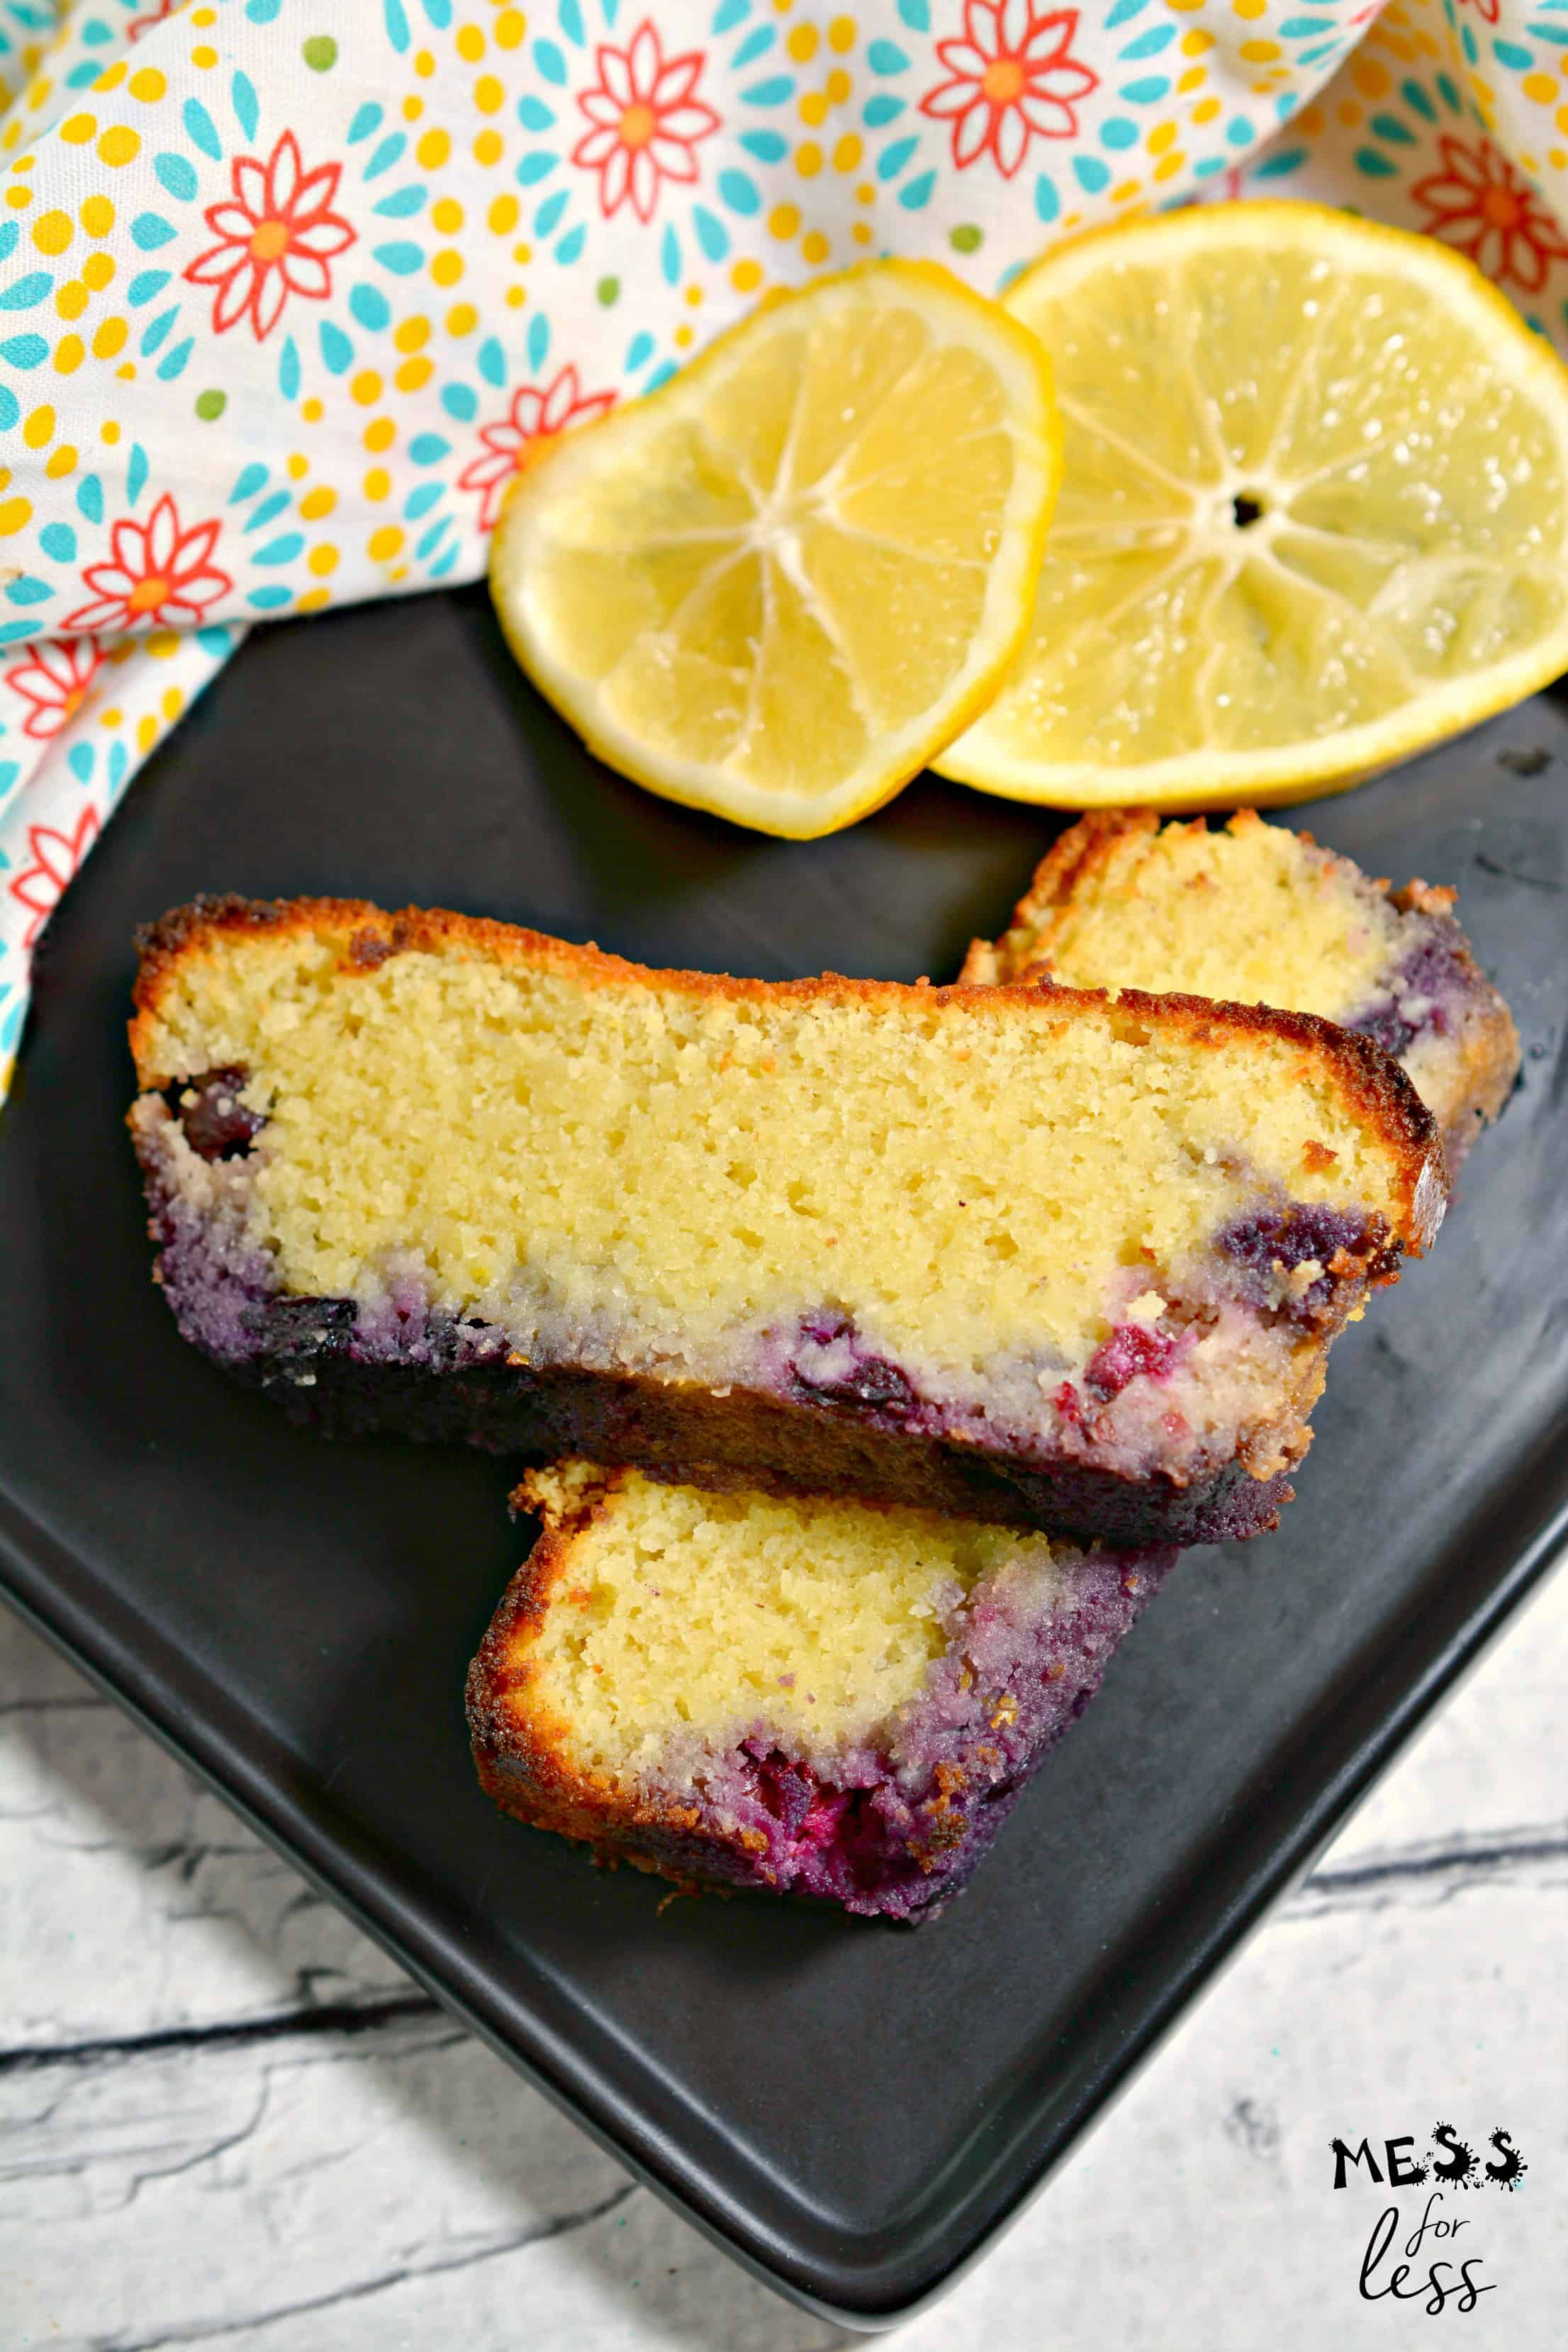 Keto Low Carb Lemon Blueberry Bread